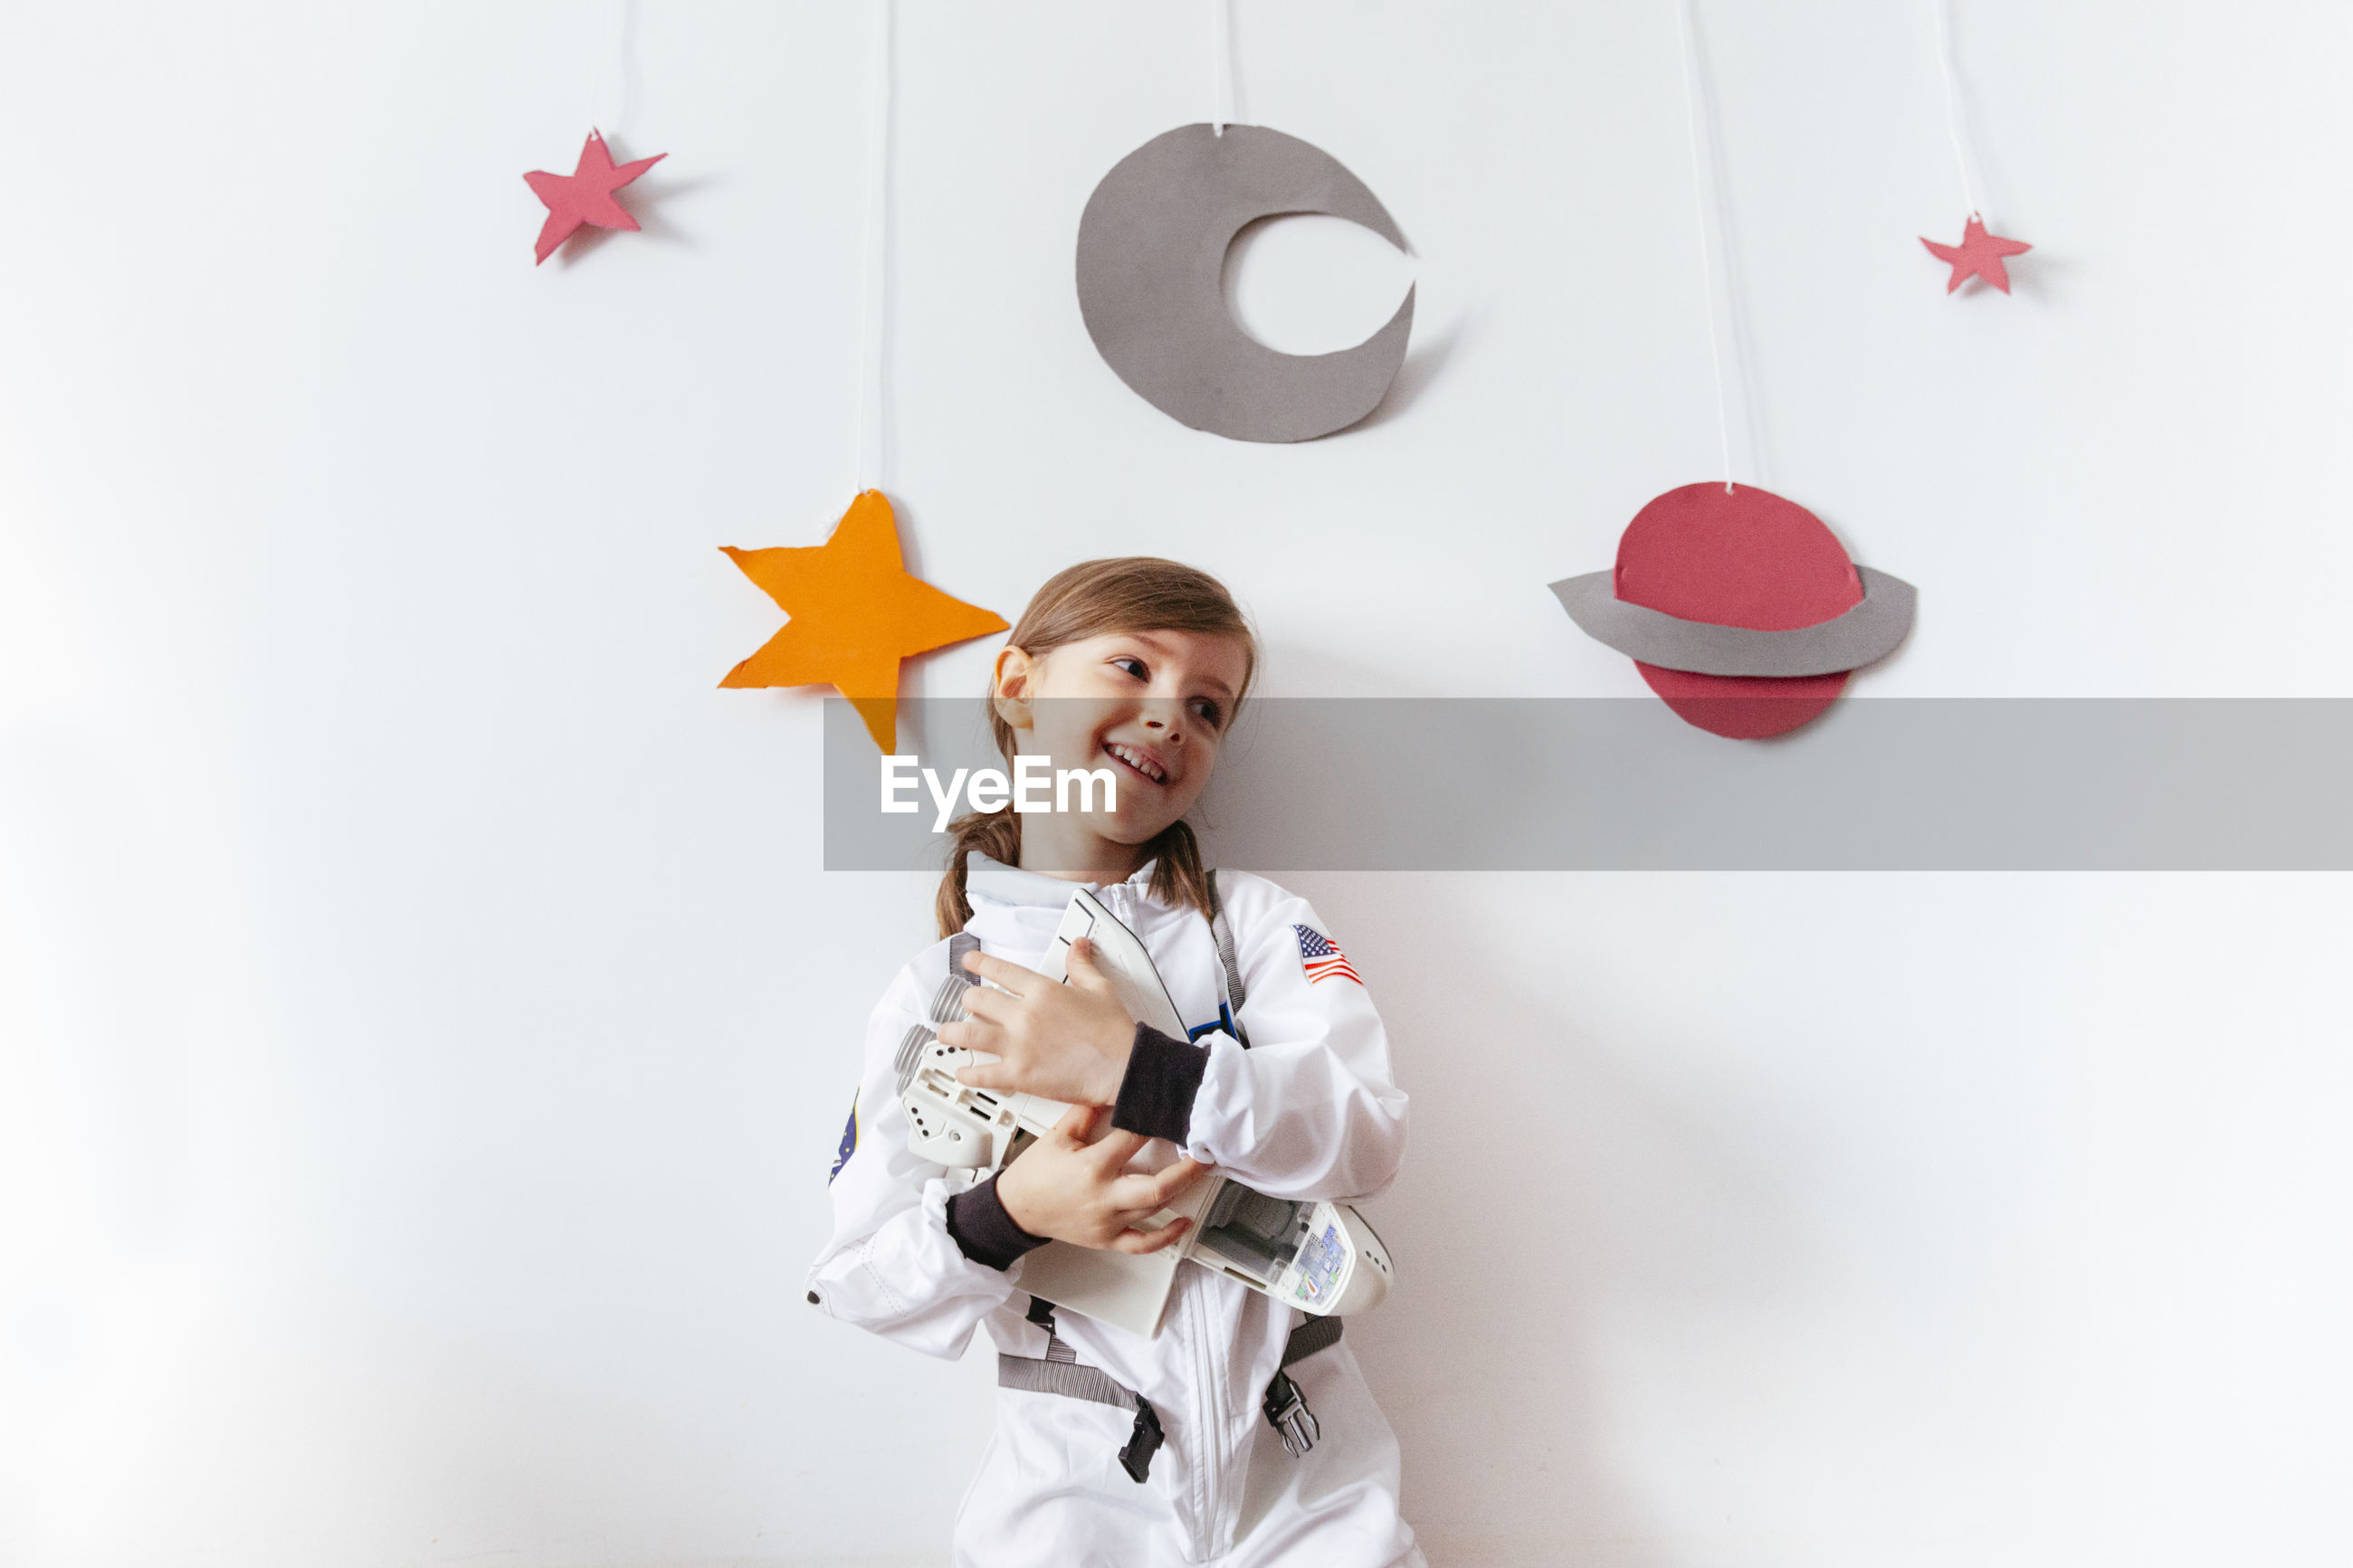 Smiling girl wearing spacesuit holding model airplane against wall at home